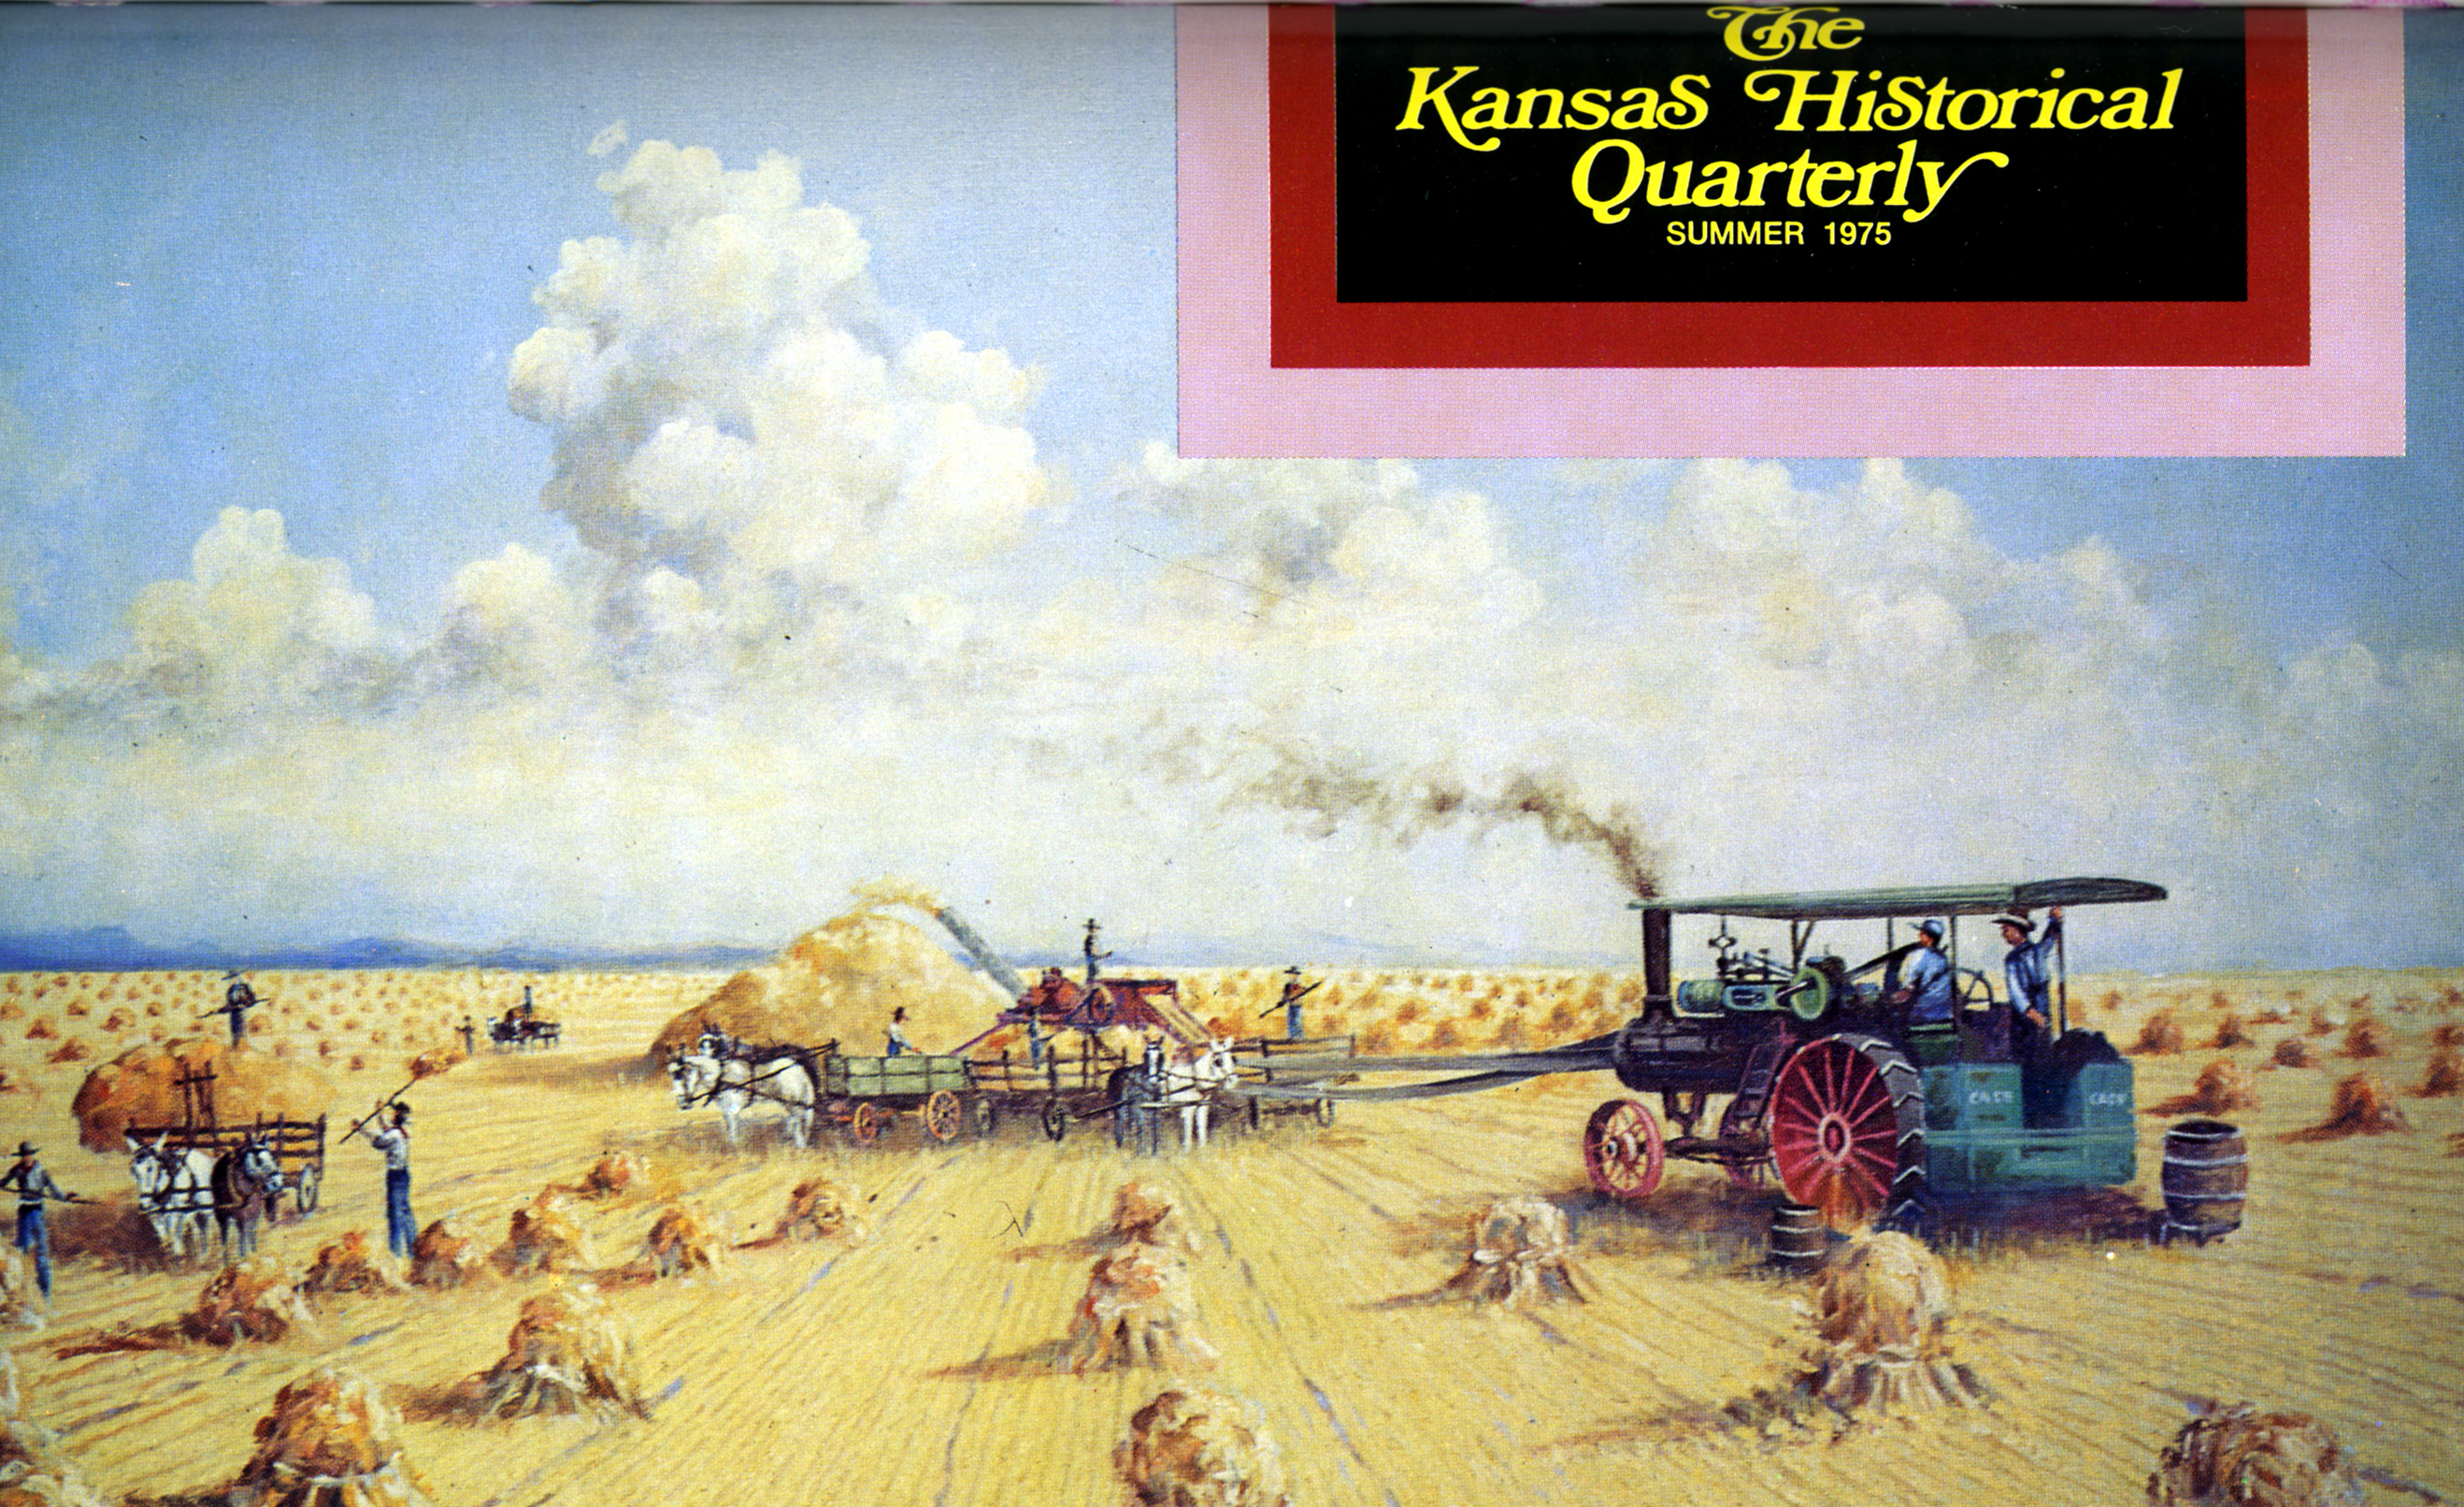 Kansas Historical Quarterly, Summer 1975